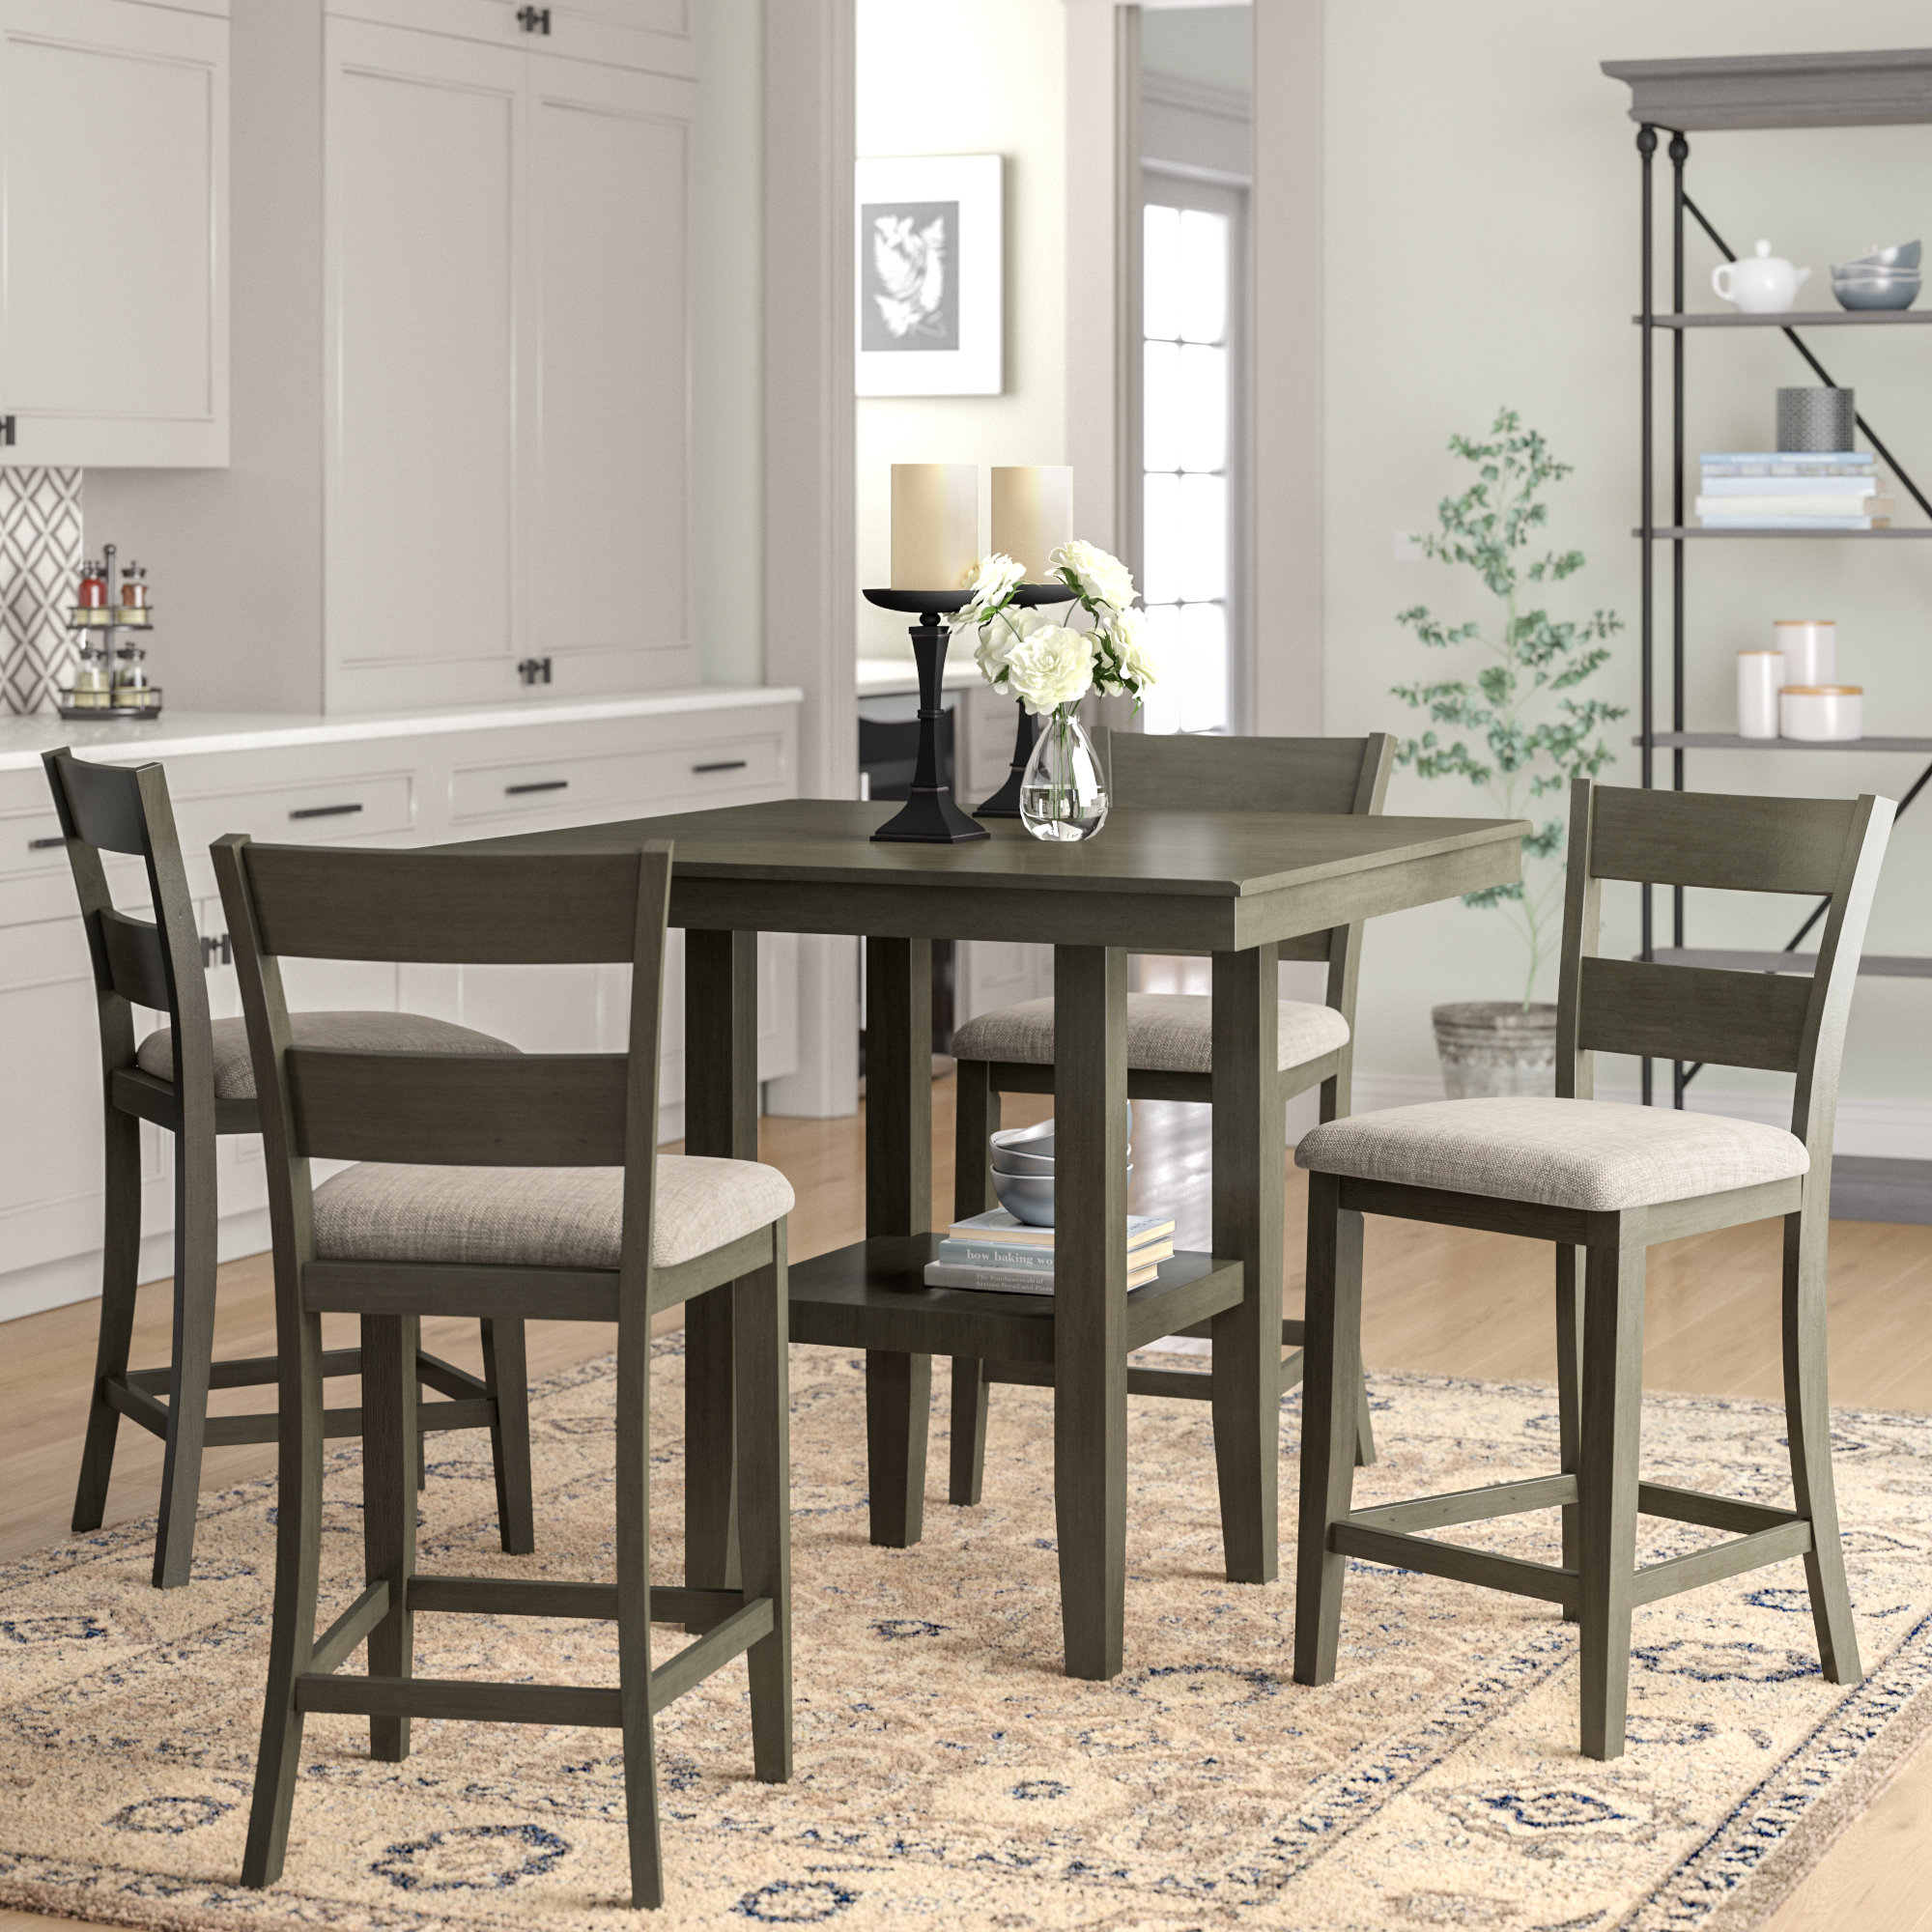 Charlton Home Gwyneth 5 Piece Counter Height Dining Set & Reviews For Most Recent Tappahannock 3 Piece Counter Height Dining Sets (Photo 11 of 20)